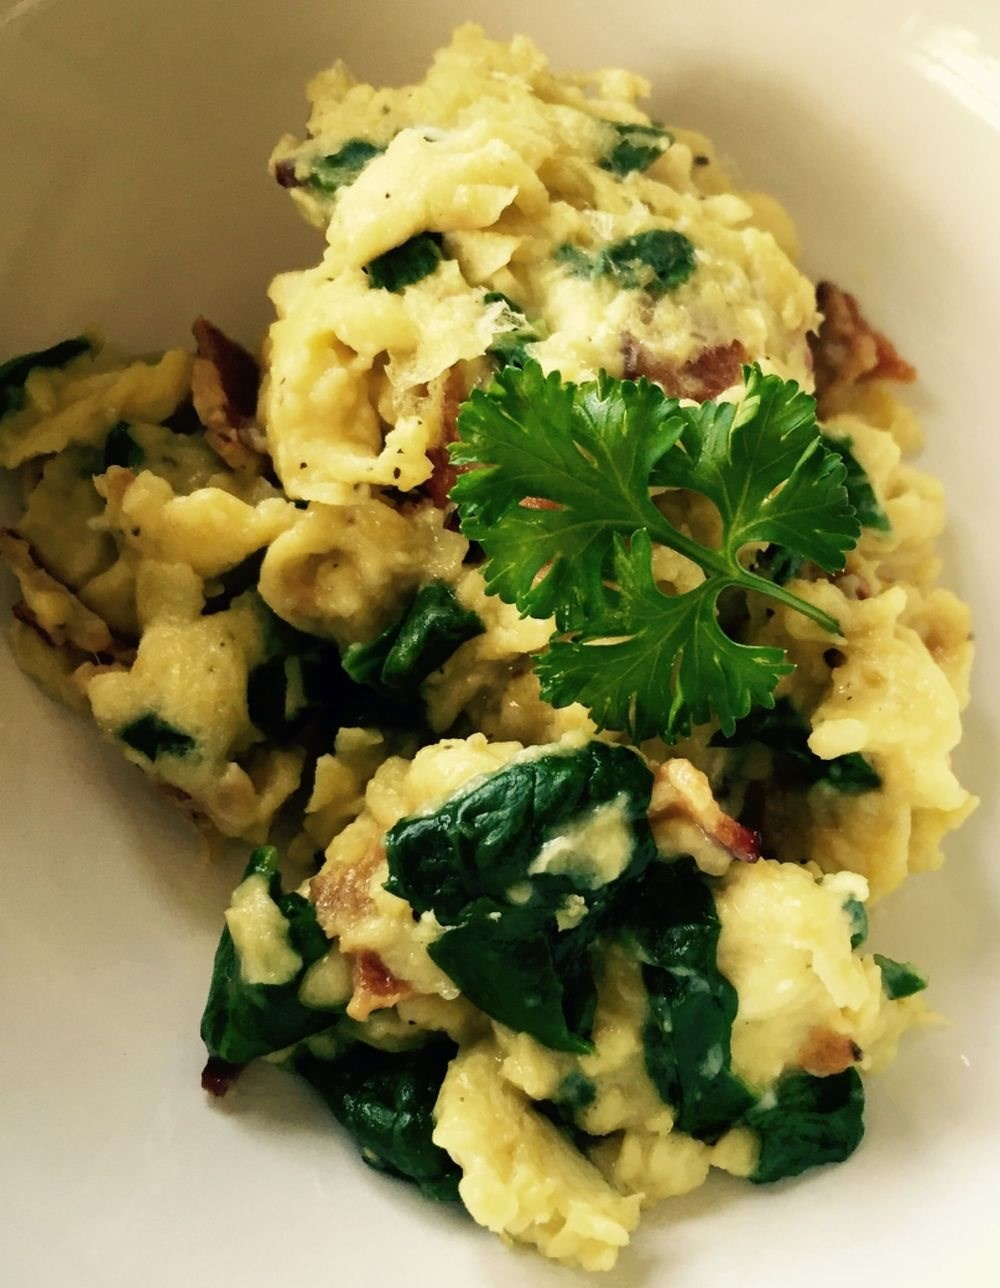 Spinach and Bacon Scramble